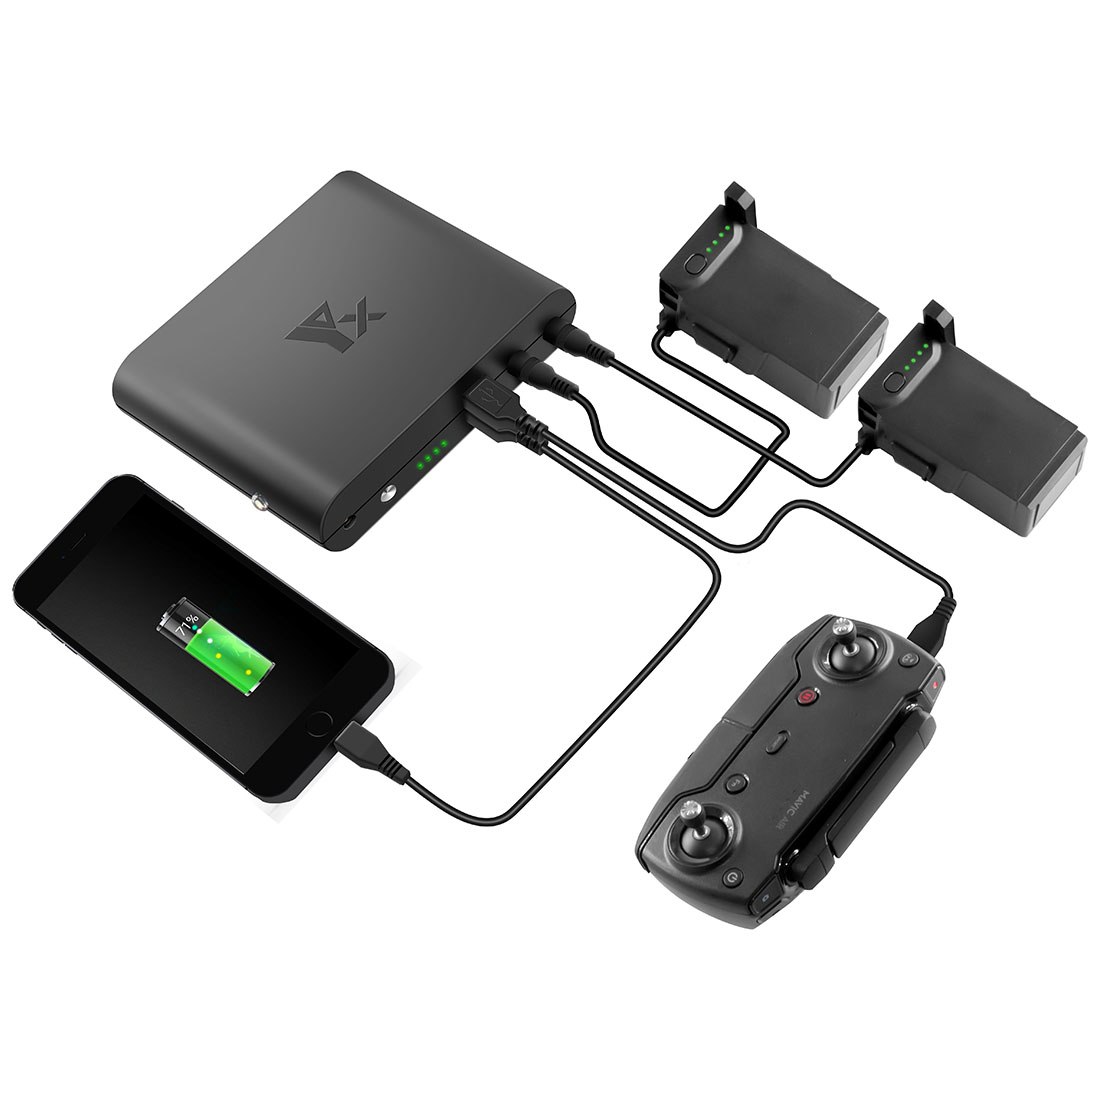 HOBBYINRC 4in1 Power Bank Mobile Power Transverter Outdoor Charger for DJI  Tello Drone for National Standard Plug / US Plug -in Drone Battery Chargers